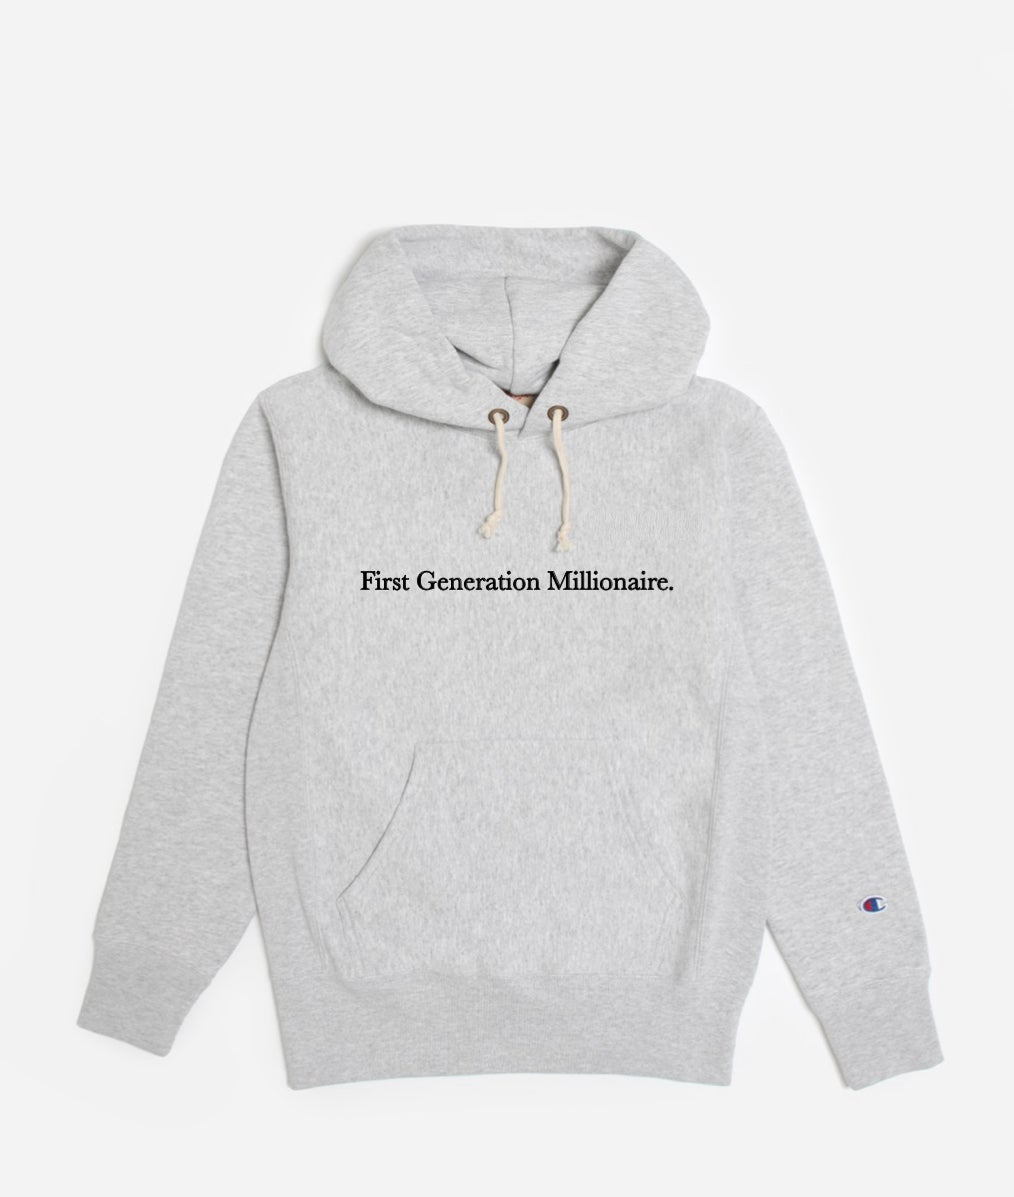 Image of FGM INDI x Champion Collection